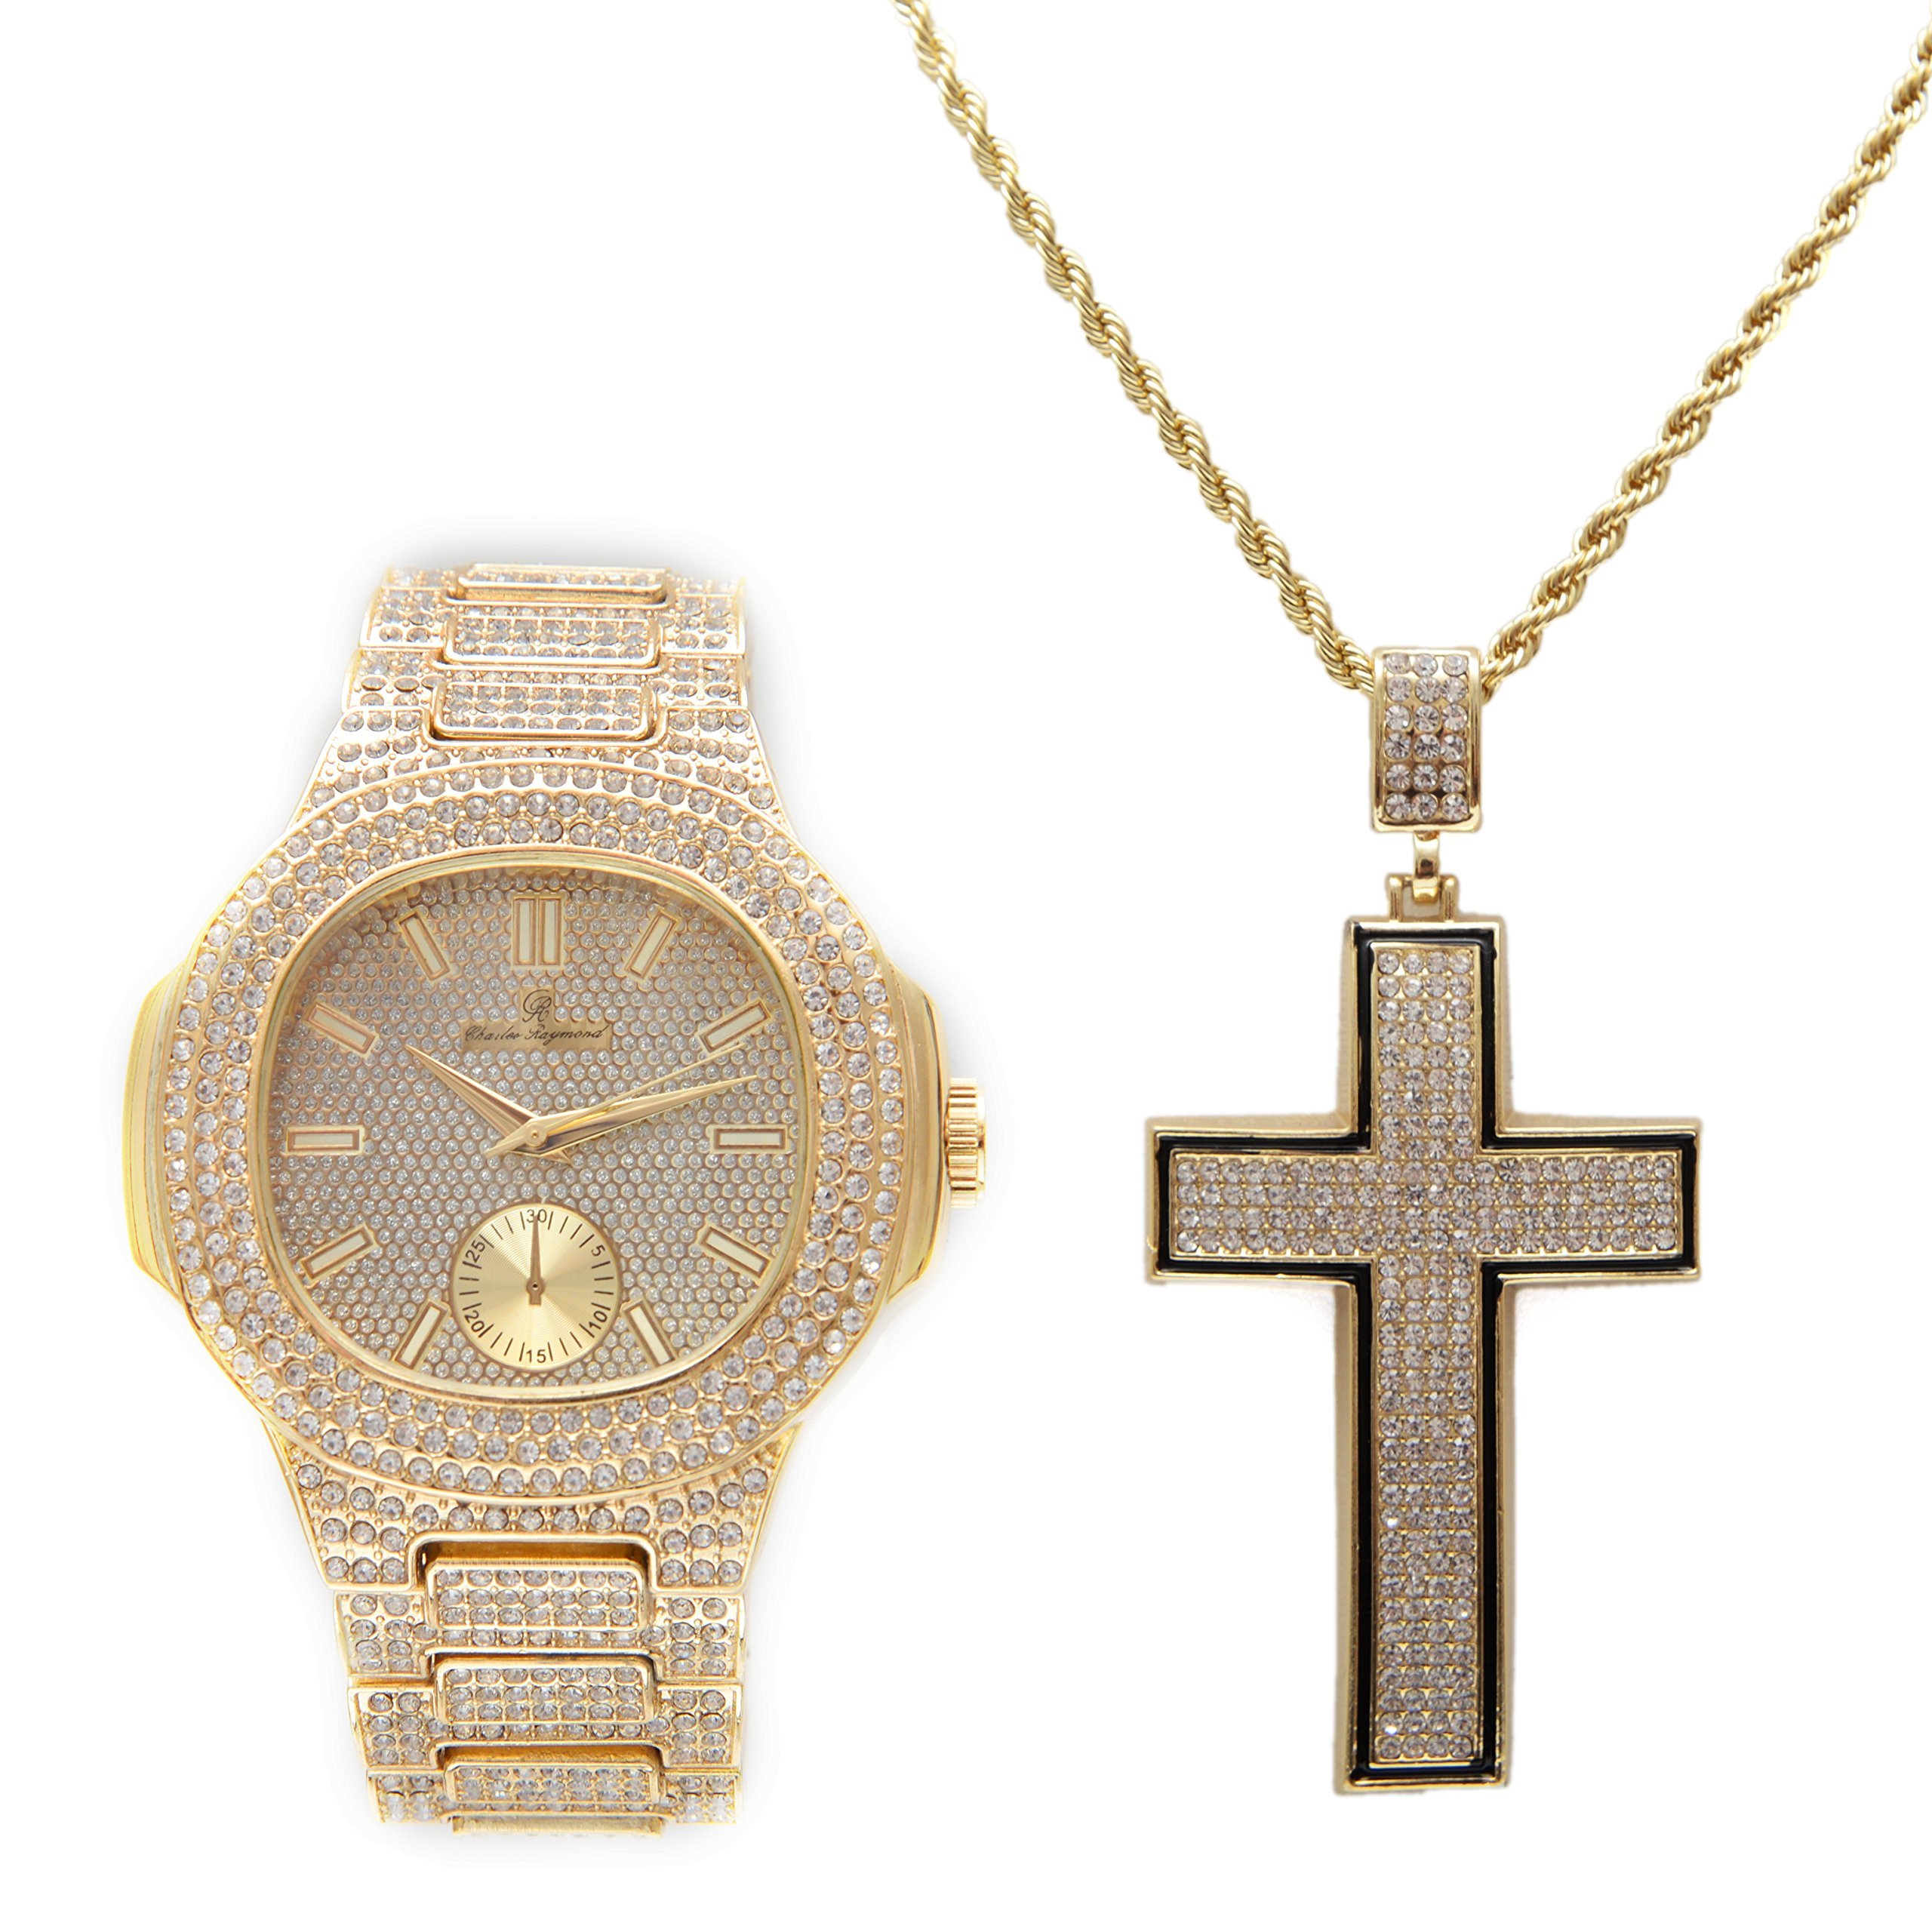 Hip Hop Big Mens Iced Out Oblong Gold Watch with Black Trim Bling Concaved Shape Cross Pendant Chain-8475C Gold